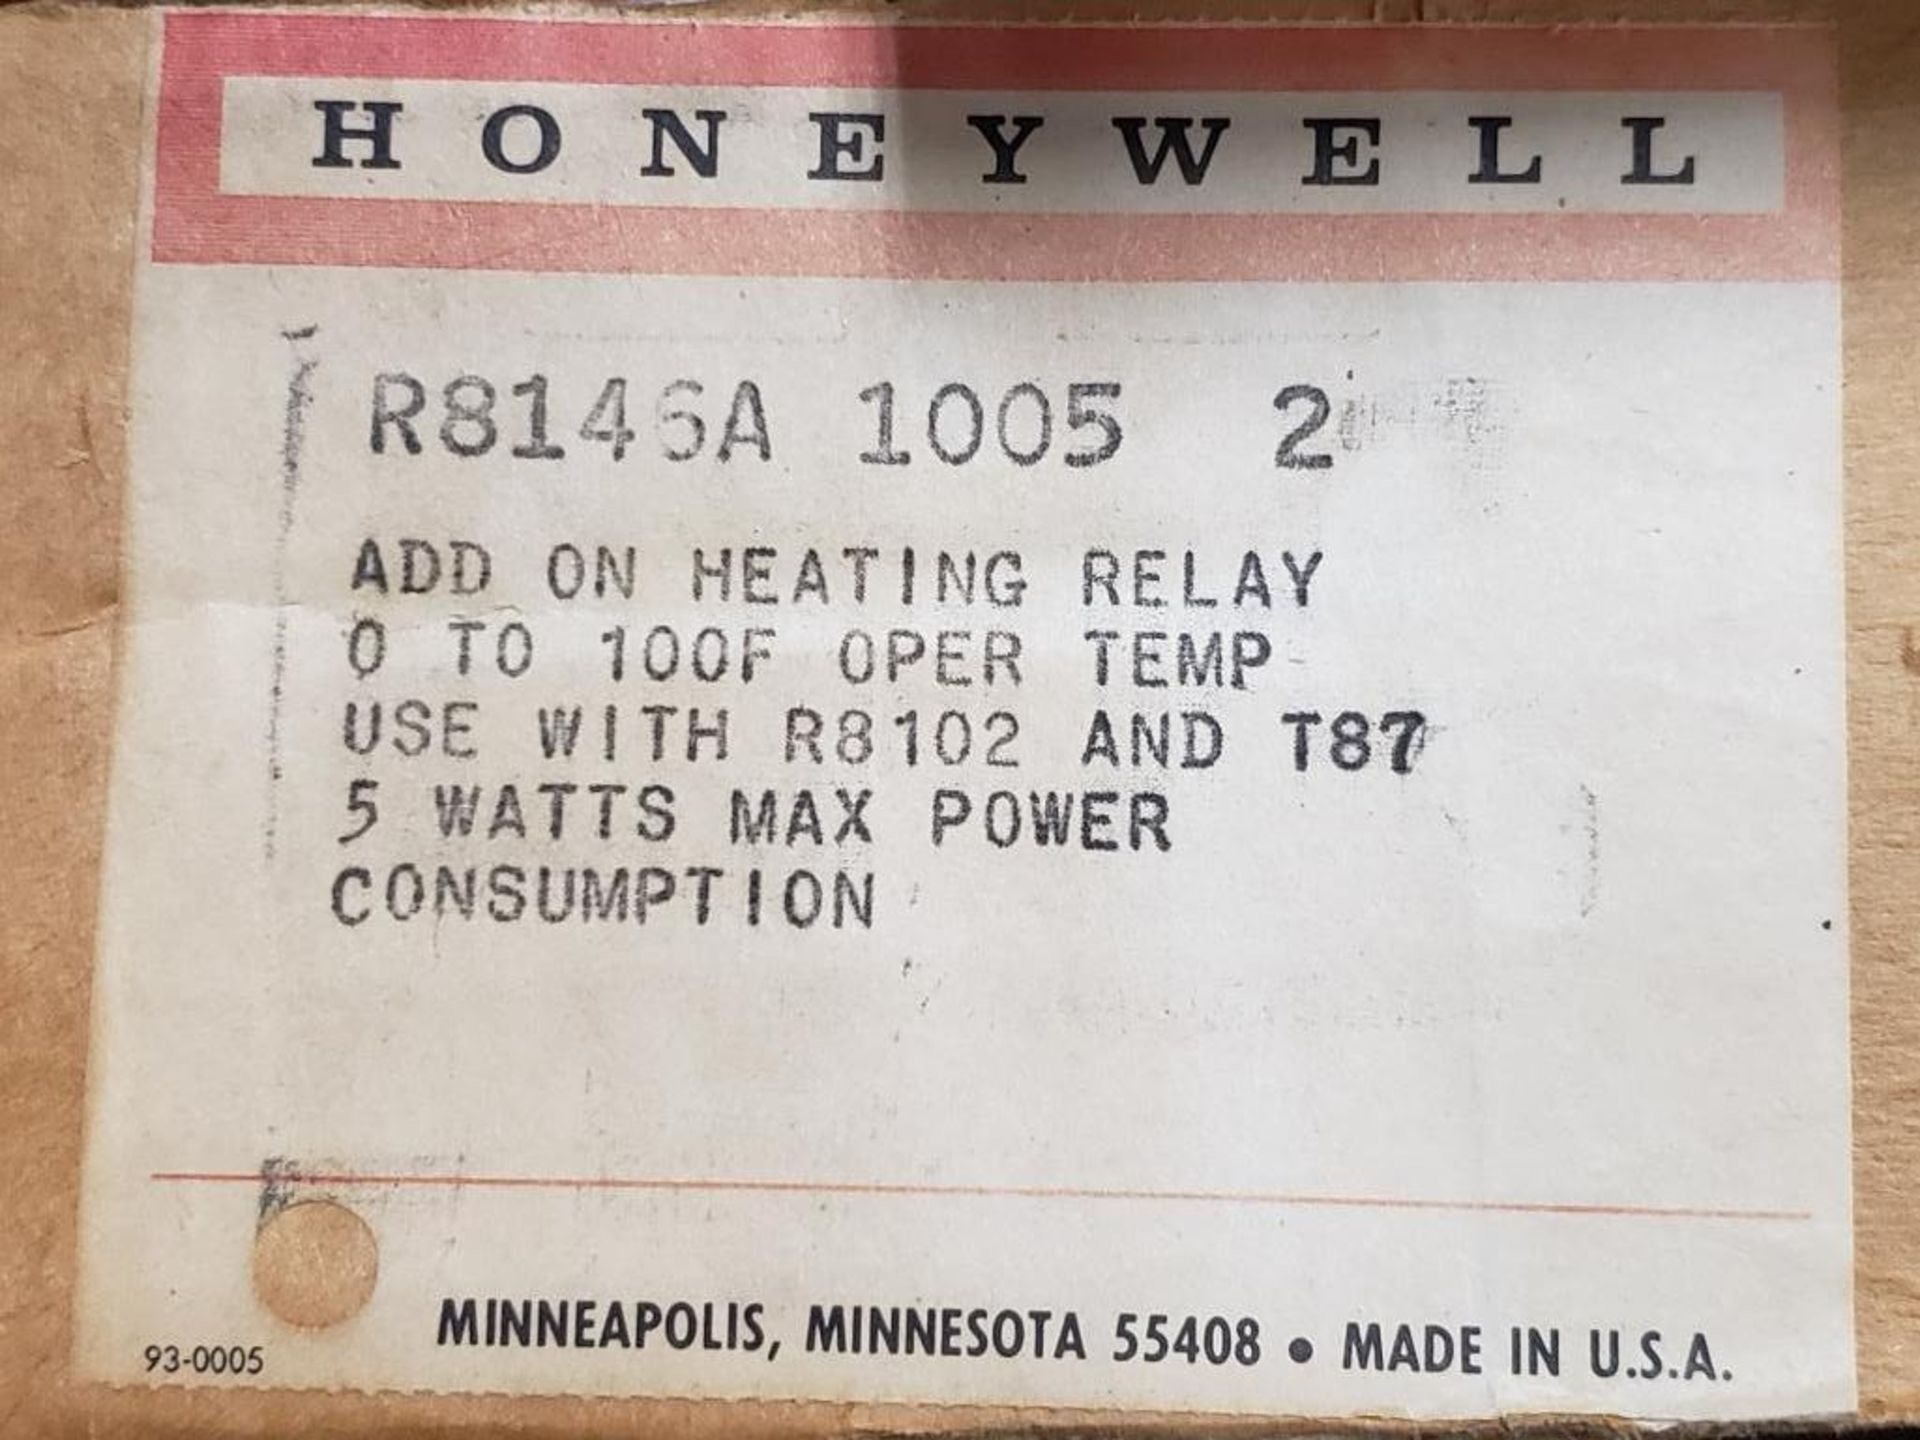 Qty 9 - Honeywell R8146A-1005-2 Add-On Heating relay. - Image 2 of 2